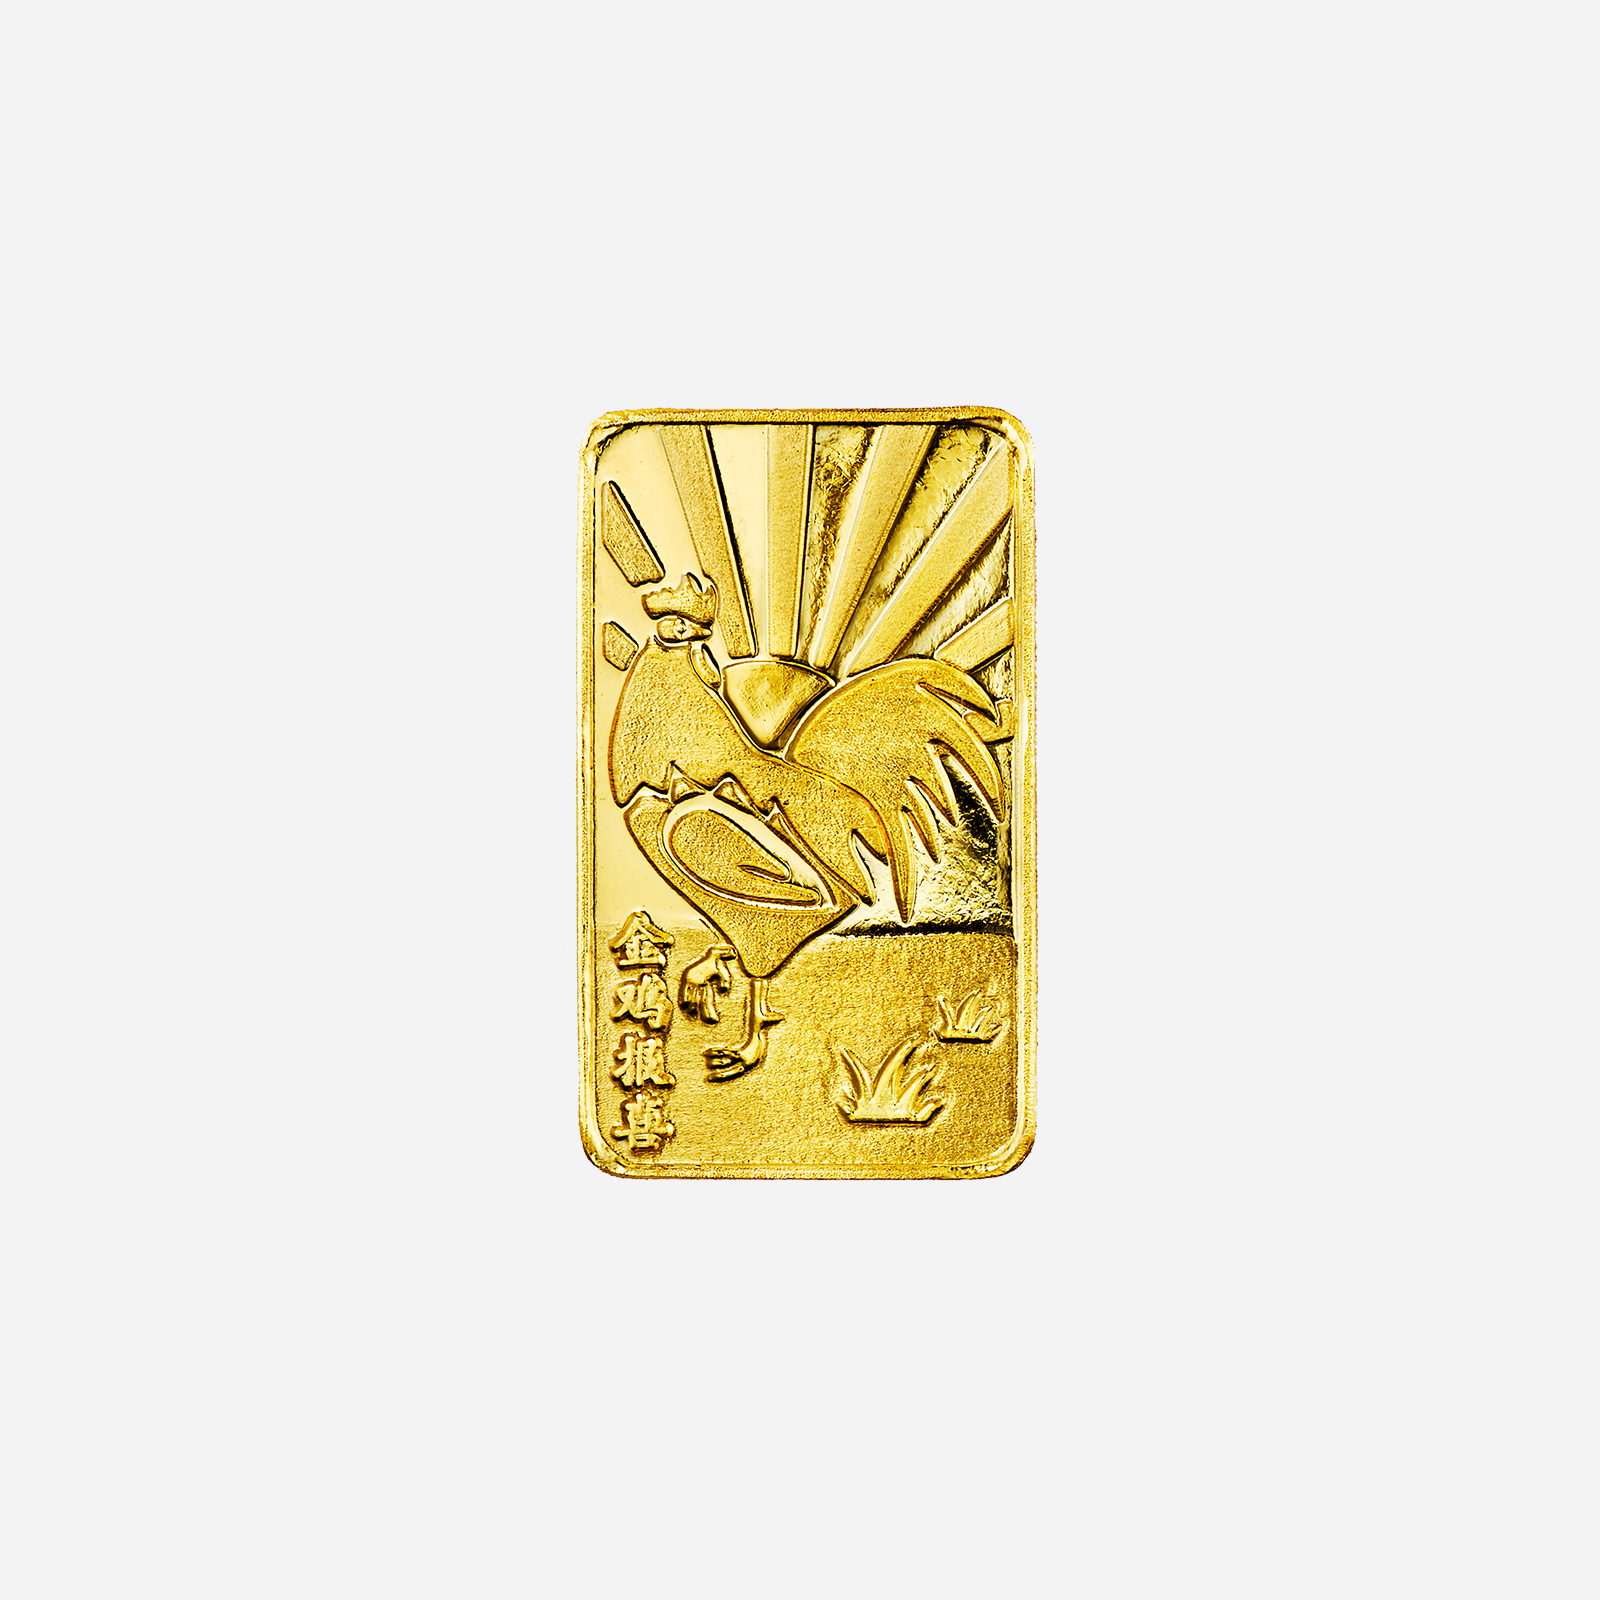 Year Of The Rooster 2.5gm Gold Bar